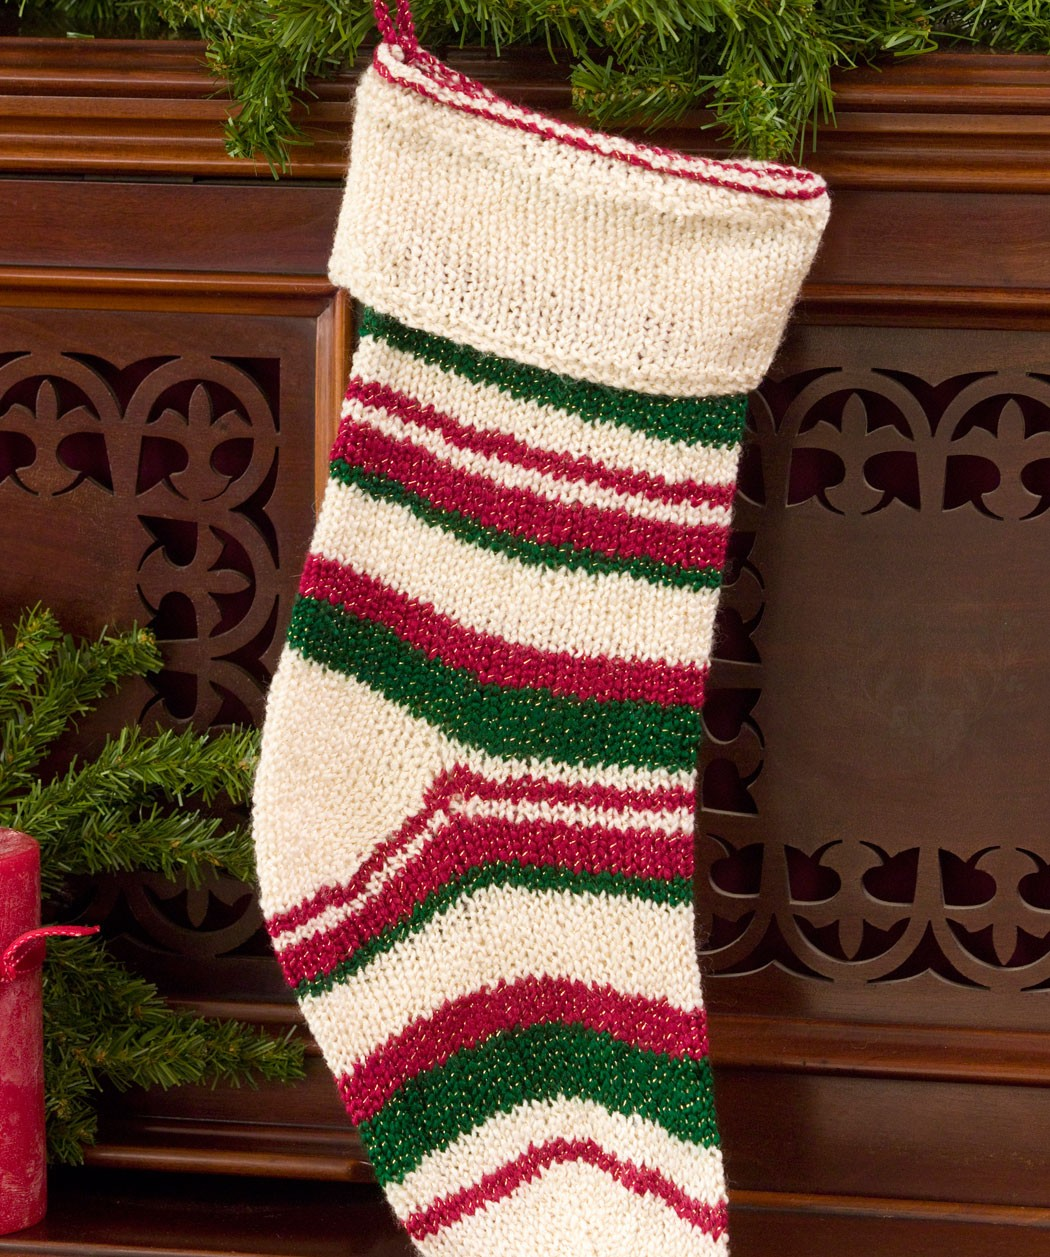 Quick Knits Free Pattern : Search Results for ?Christmas Stockings Templates Patterns?   Calendar 2015